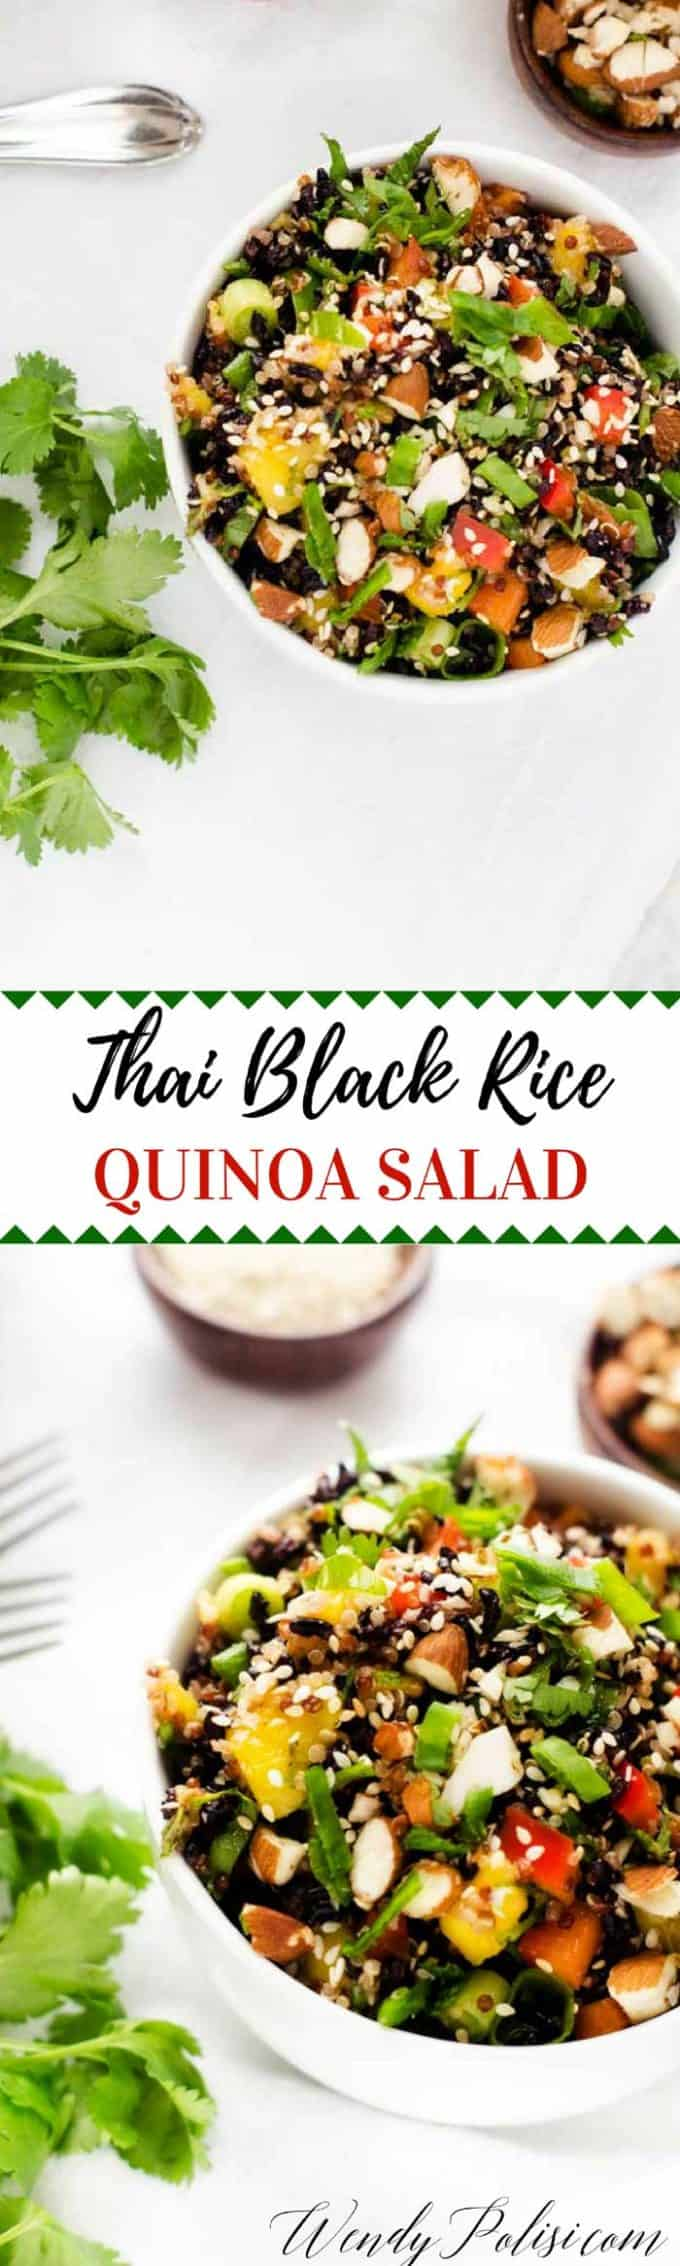 I am not sure how many quinoa salad recipes I've created, but I would guess that between the website and books the number is upwards of a hundred.  This Thai Black Rice and Quinoa Salad is without question in my Top 5 All Time Favorites.